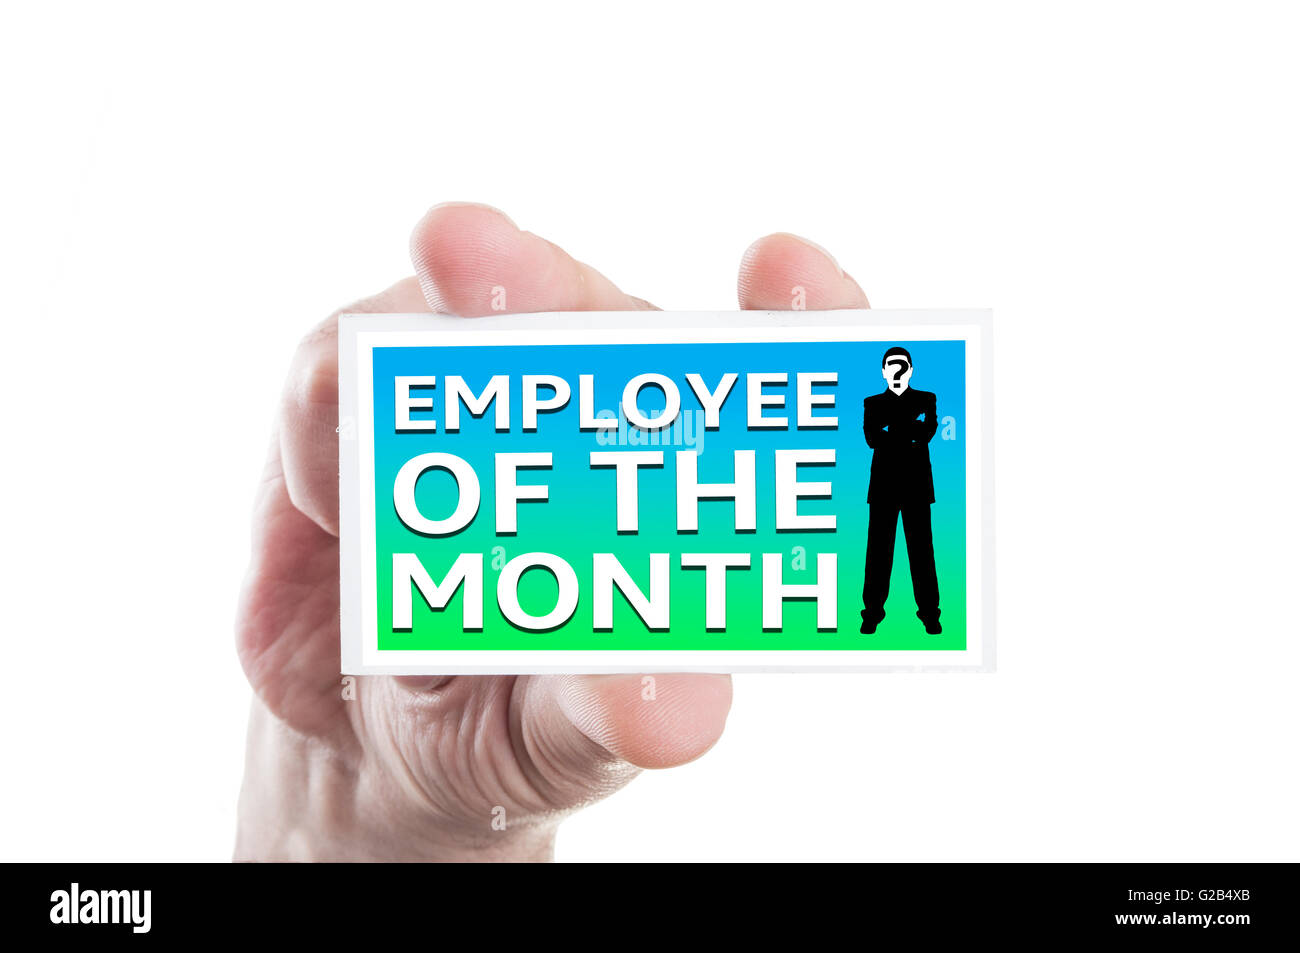 Employee Of The Month Card Amazon Com Outstanding Circuit Boardquot Stickers By Sabrina Redbubble Hand Holding Concept Isolated On White